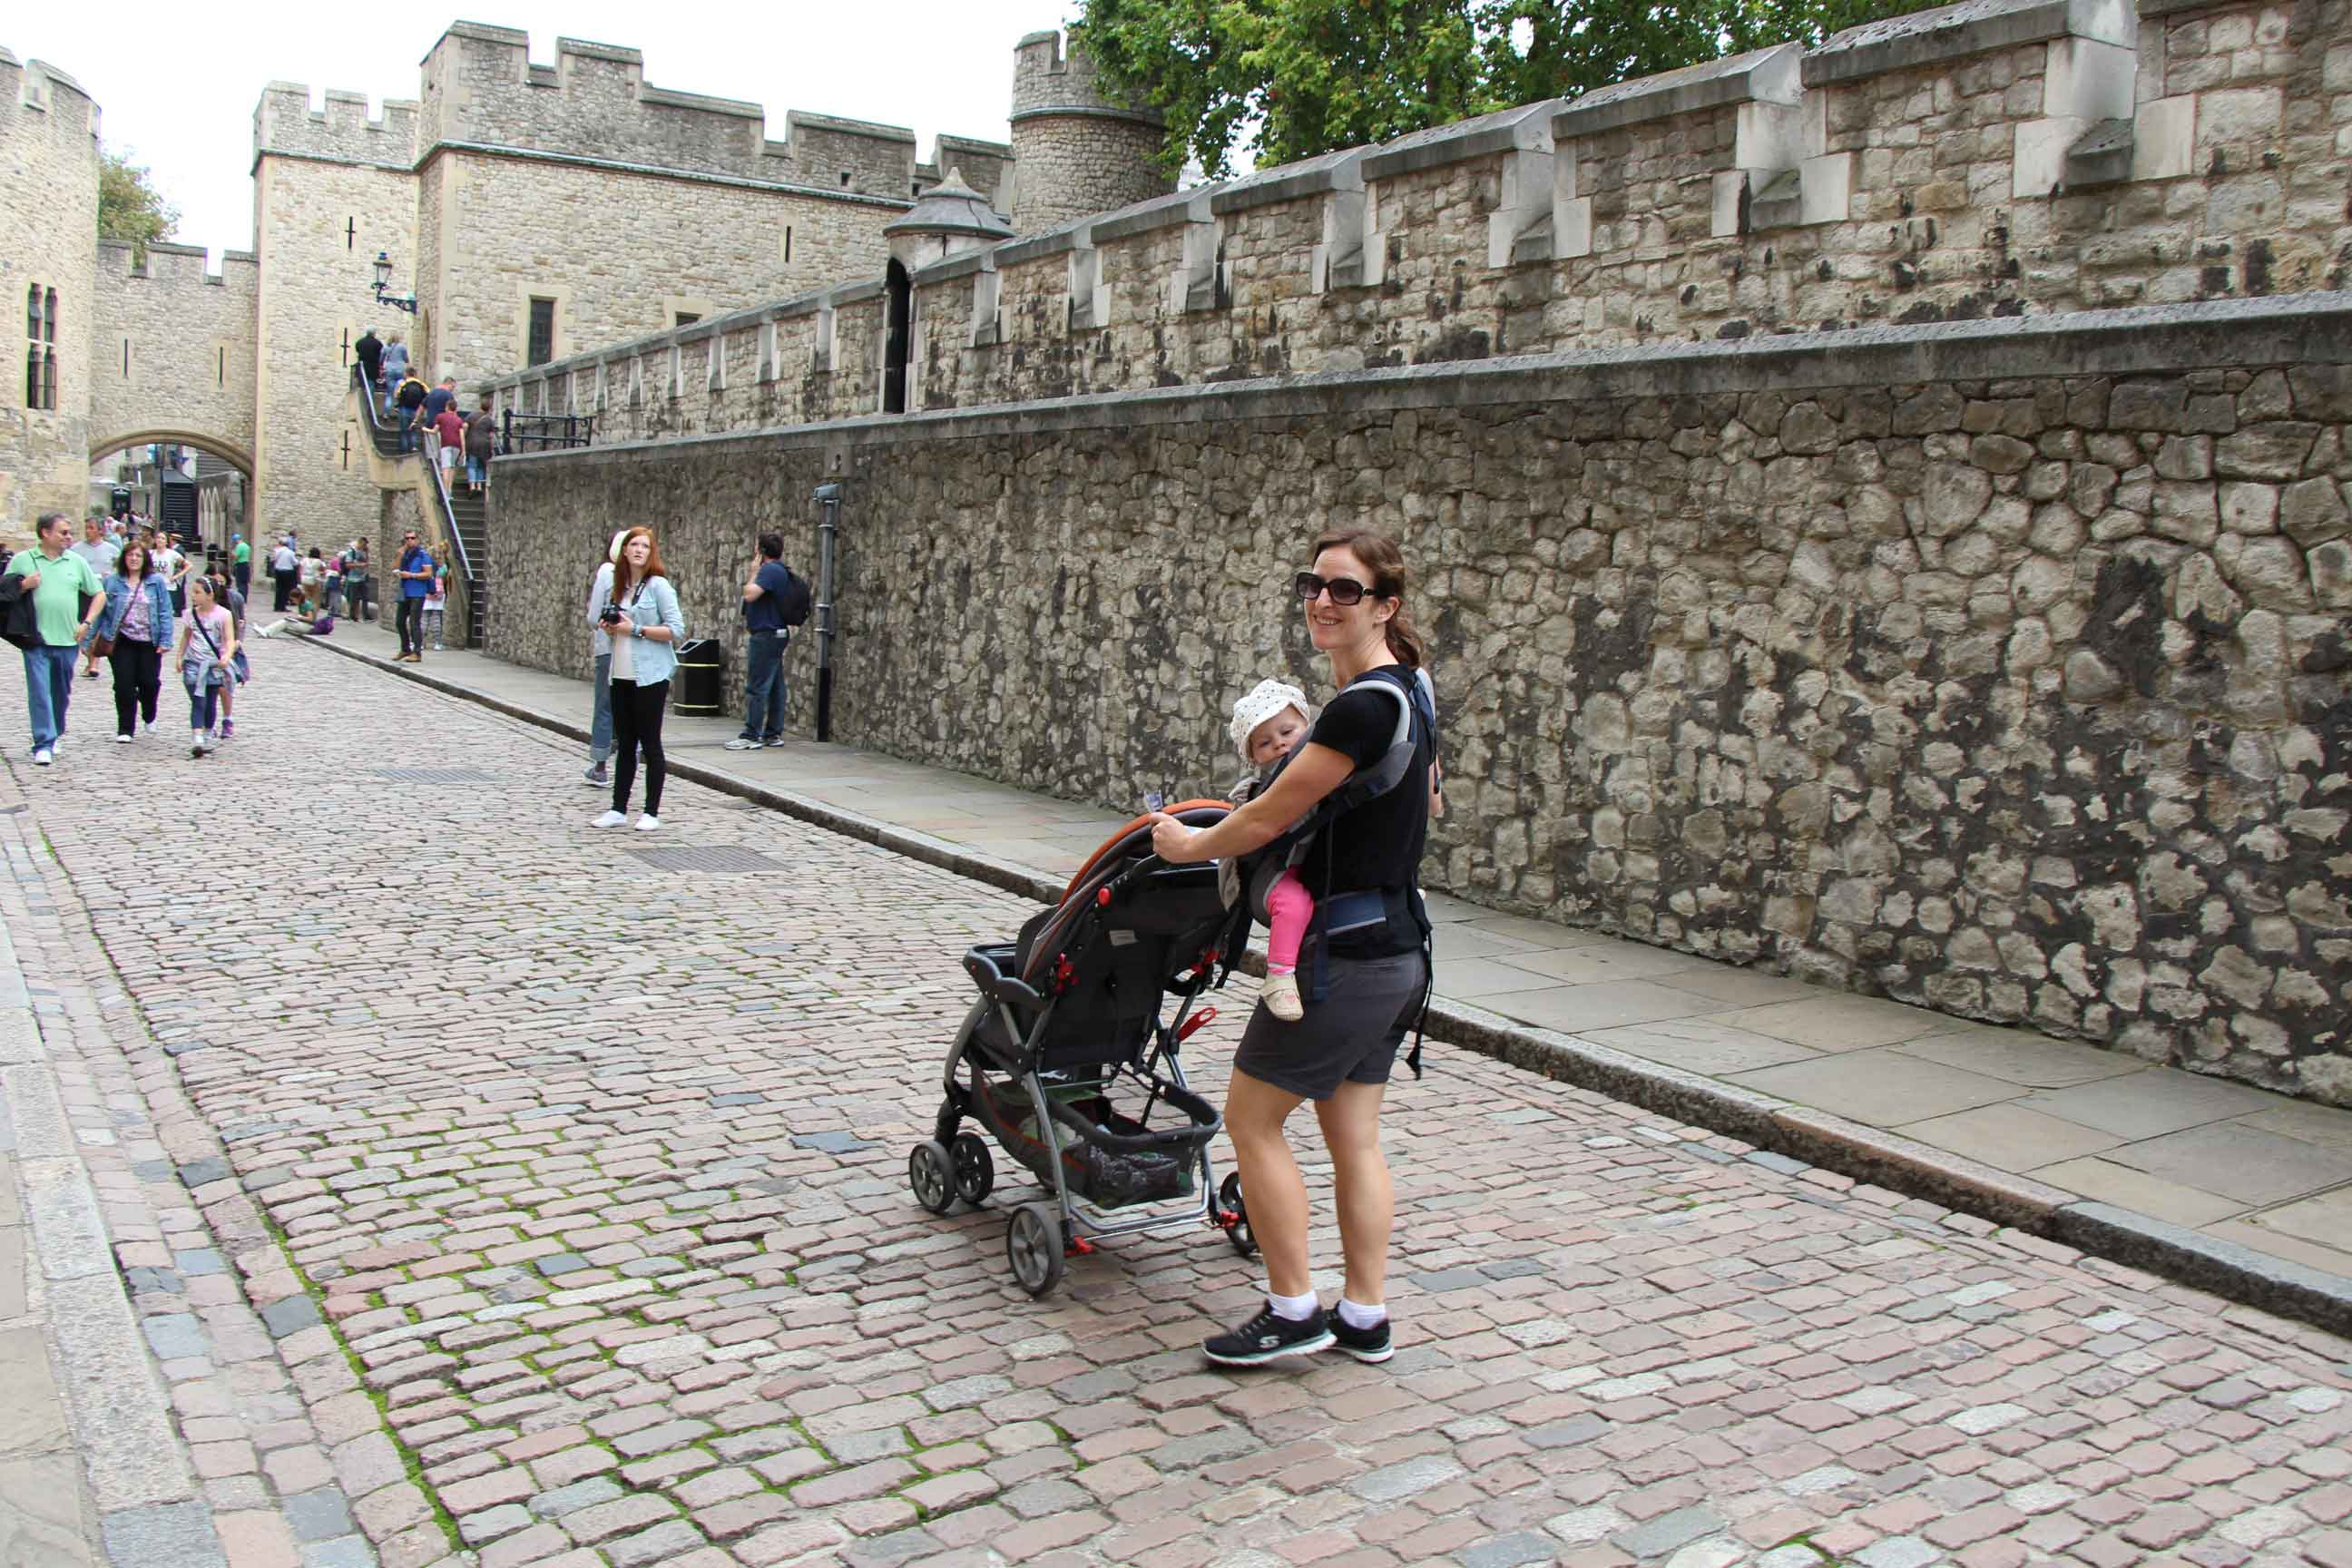 Tower of London with a baby and stroller